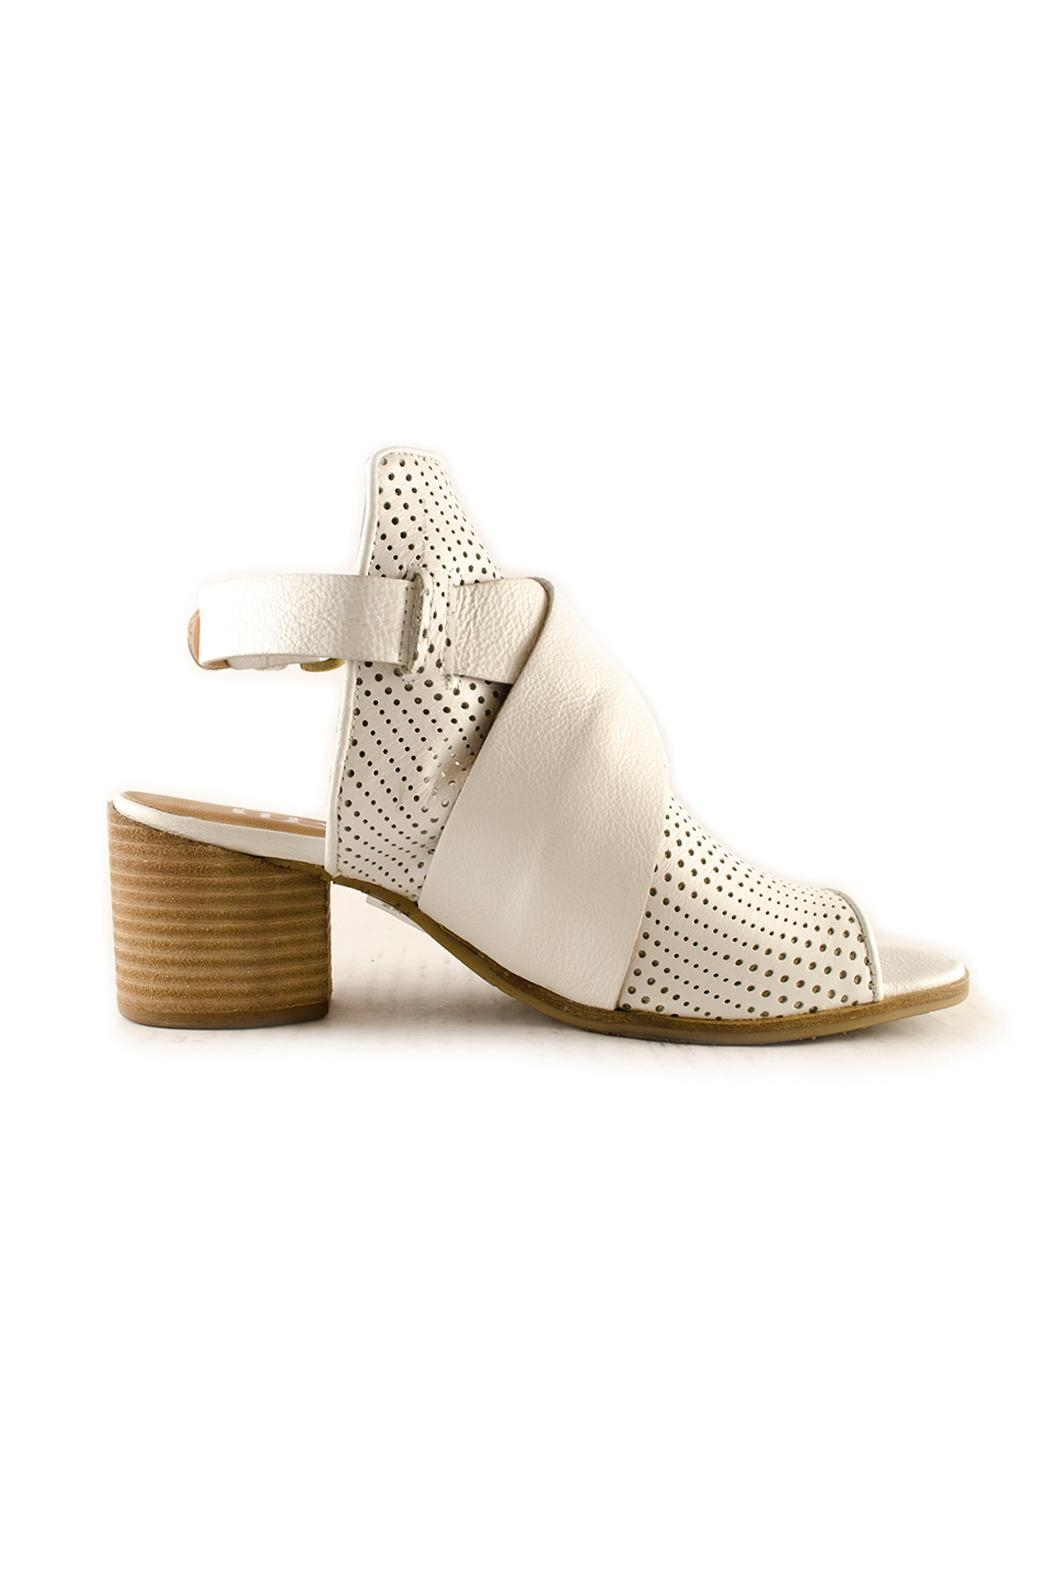 MJUS Mjus - White Sandal - Side Cropped Image